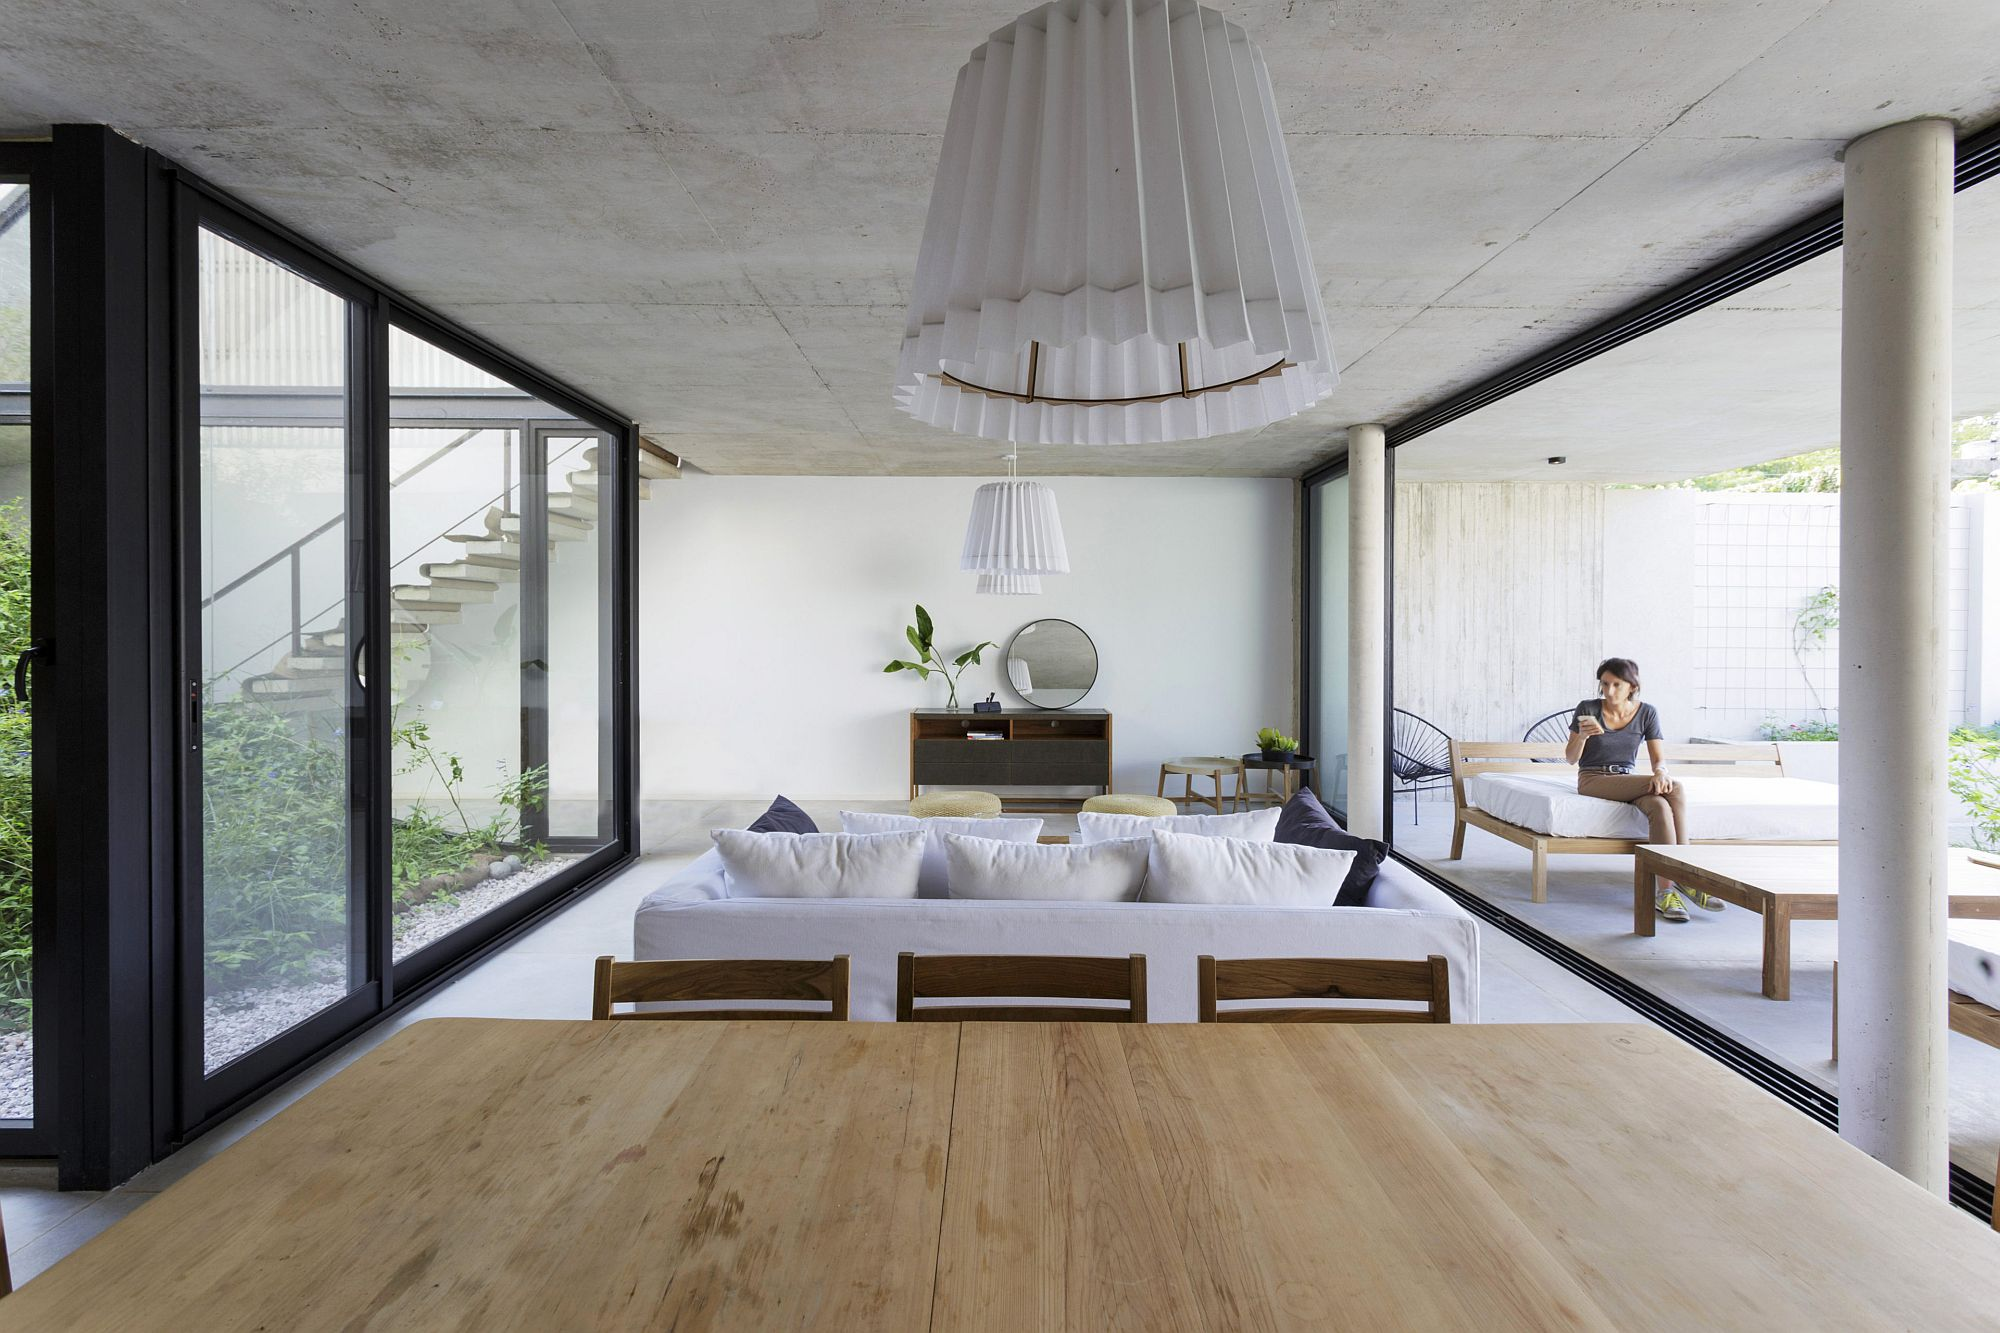 Concrete ceiling brings textural beauty to the living room in white and wood